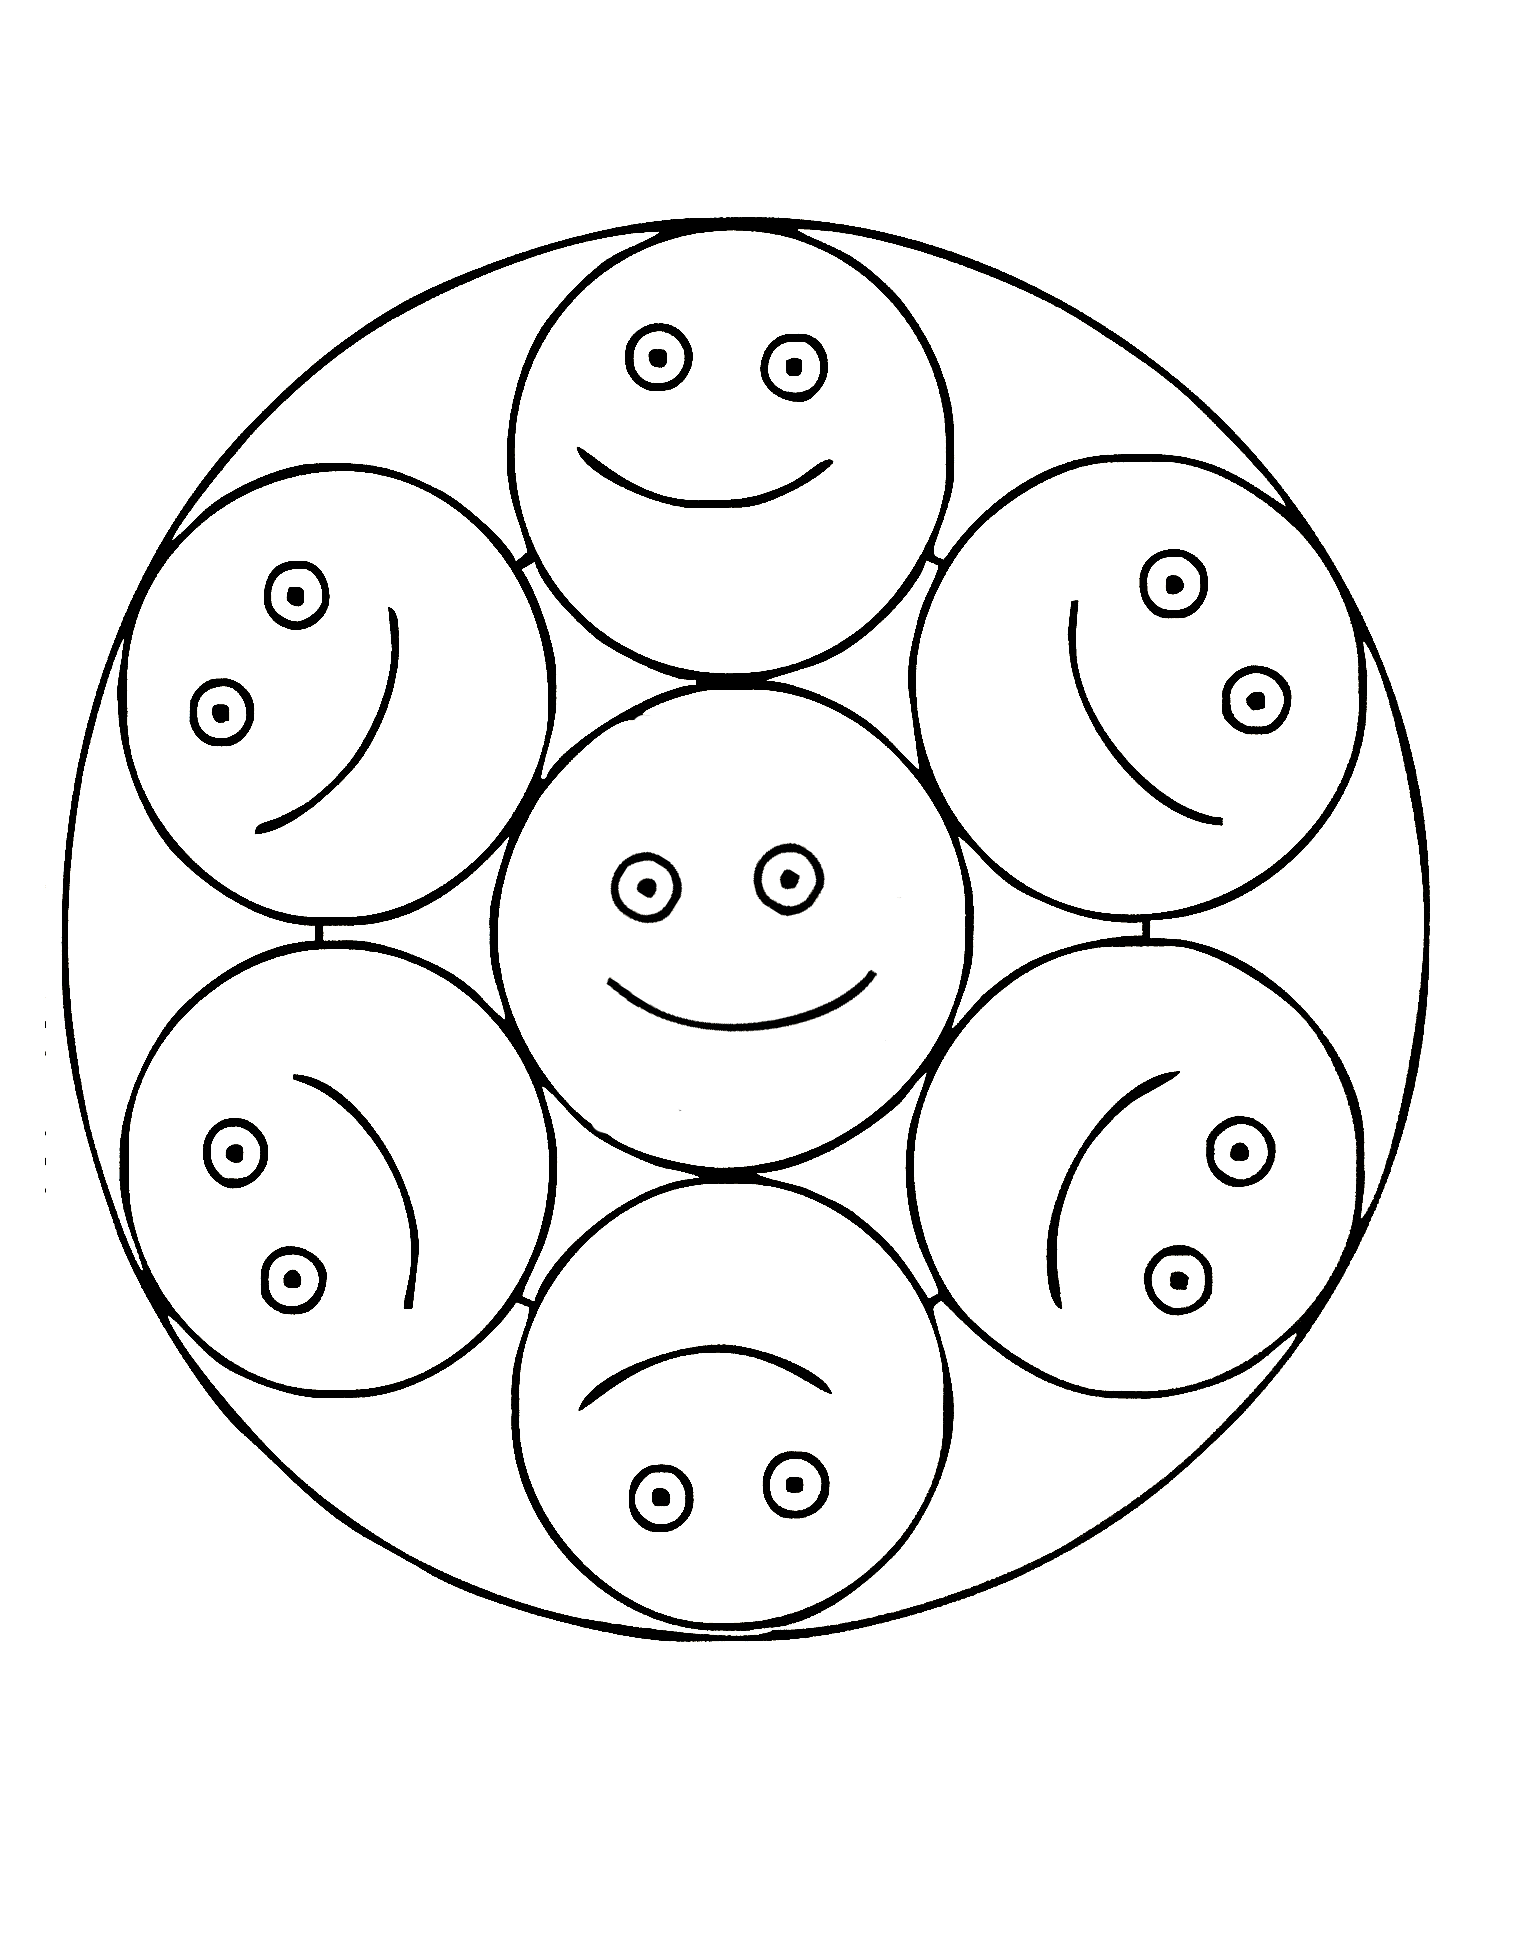 mandalas smiley mandalas with characters 100 mandalas zen